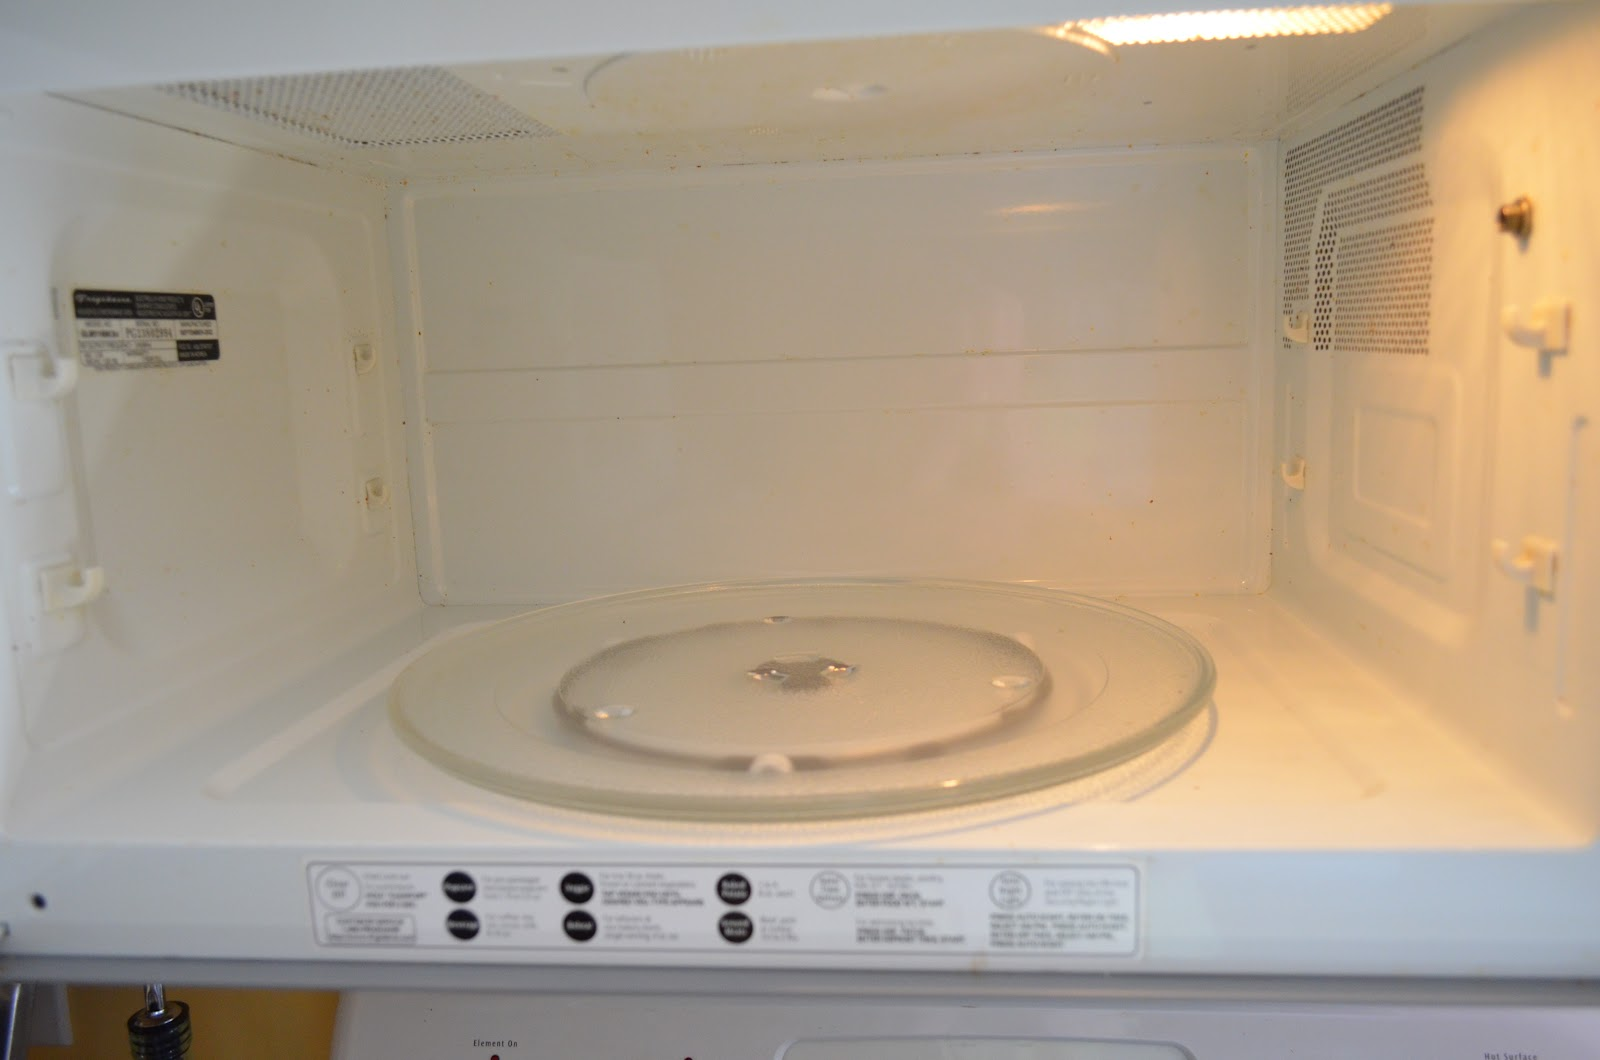 How to Clean a Microwave - Family Balance Sheet